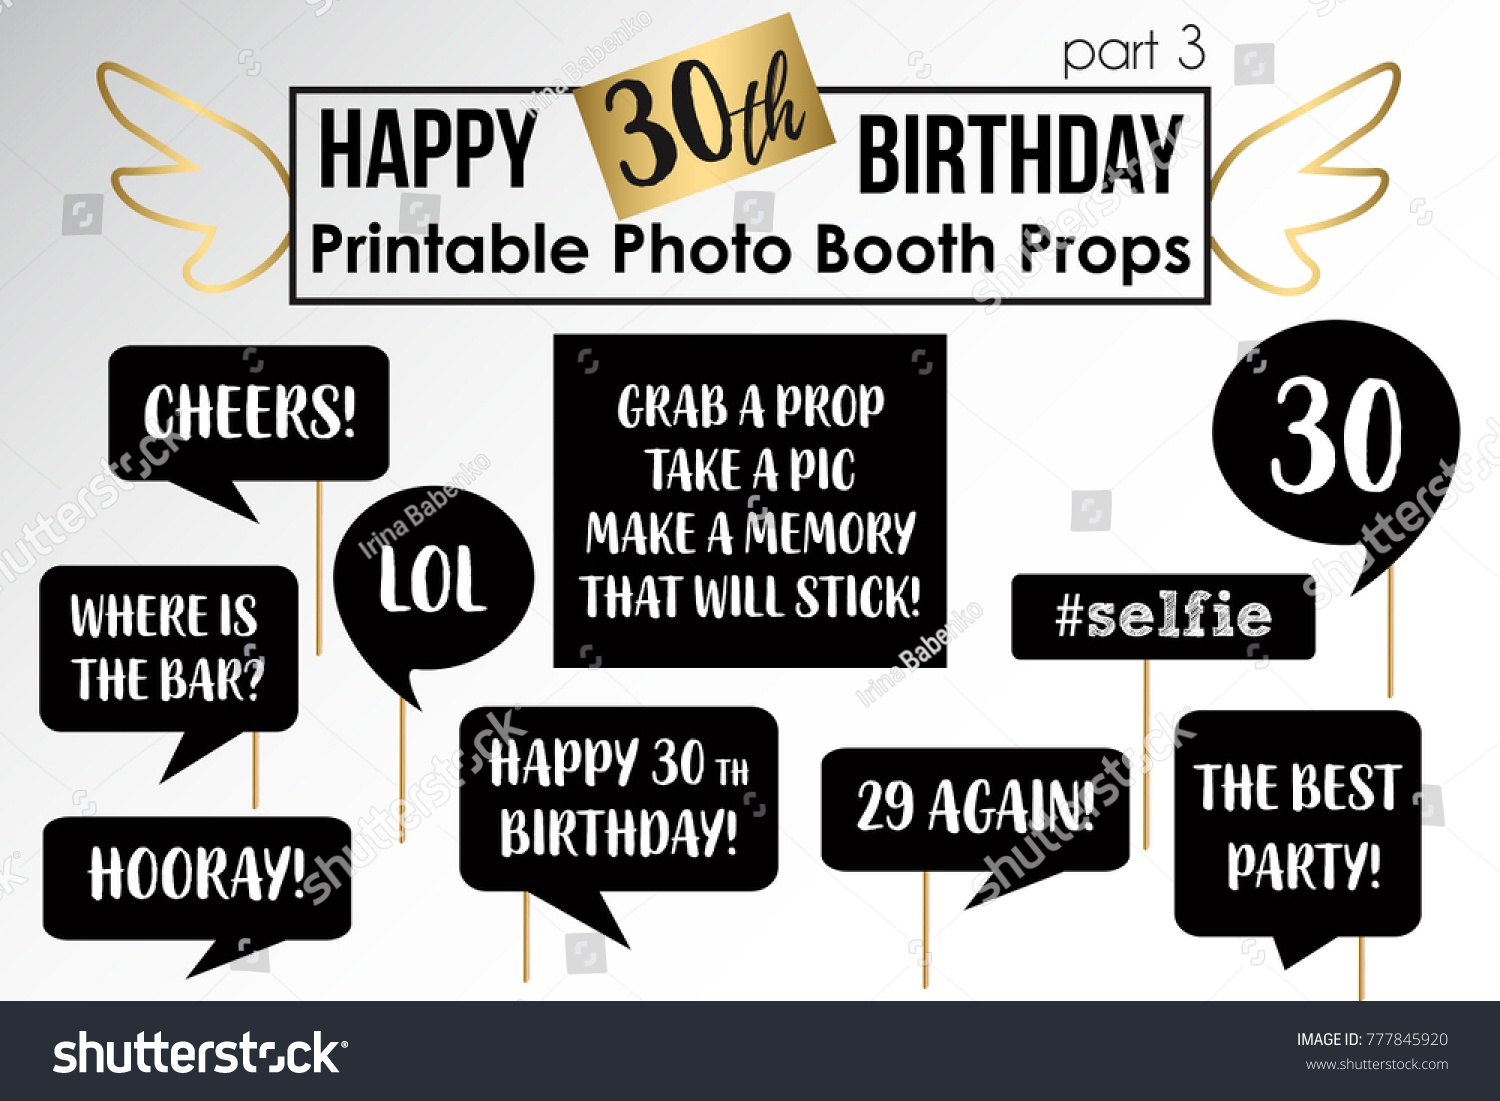 Thirtieth Birthday Party Printable Photo Booth Stock Vector (Royalty - Free Printable 30Th Birthday Photo Booth Props